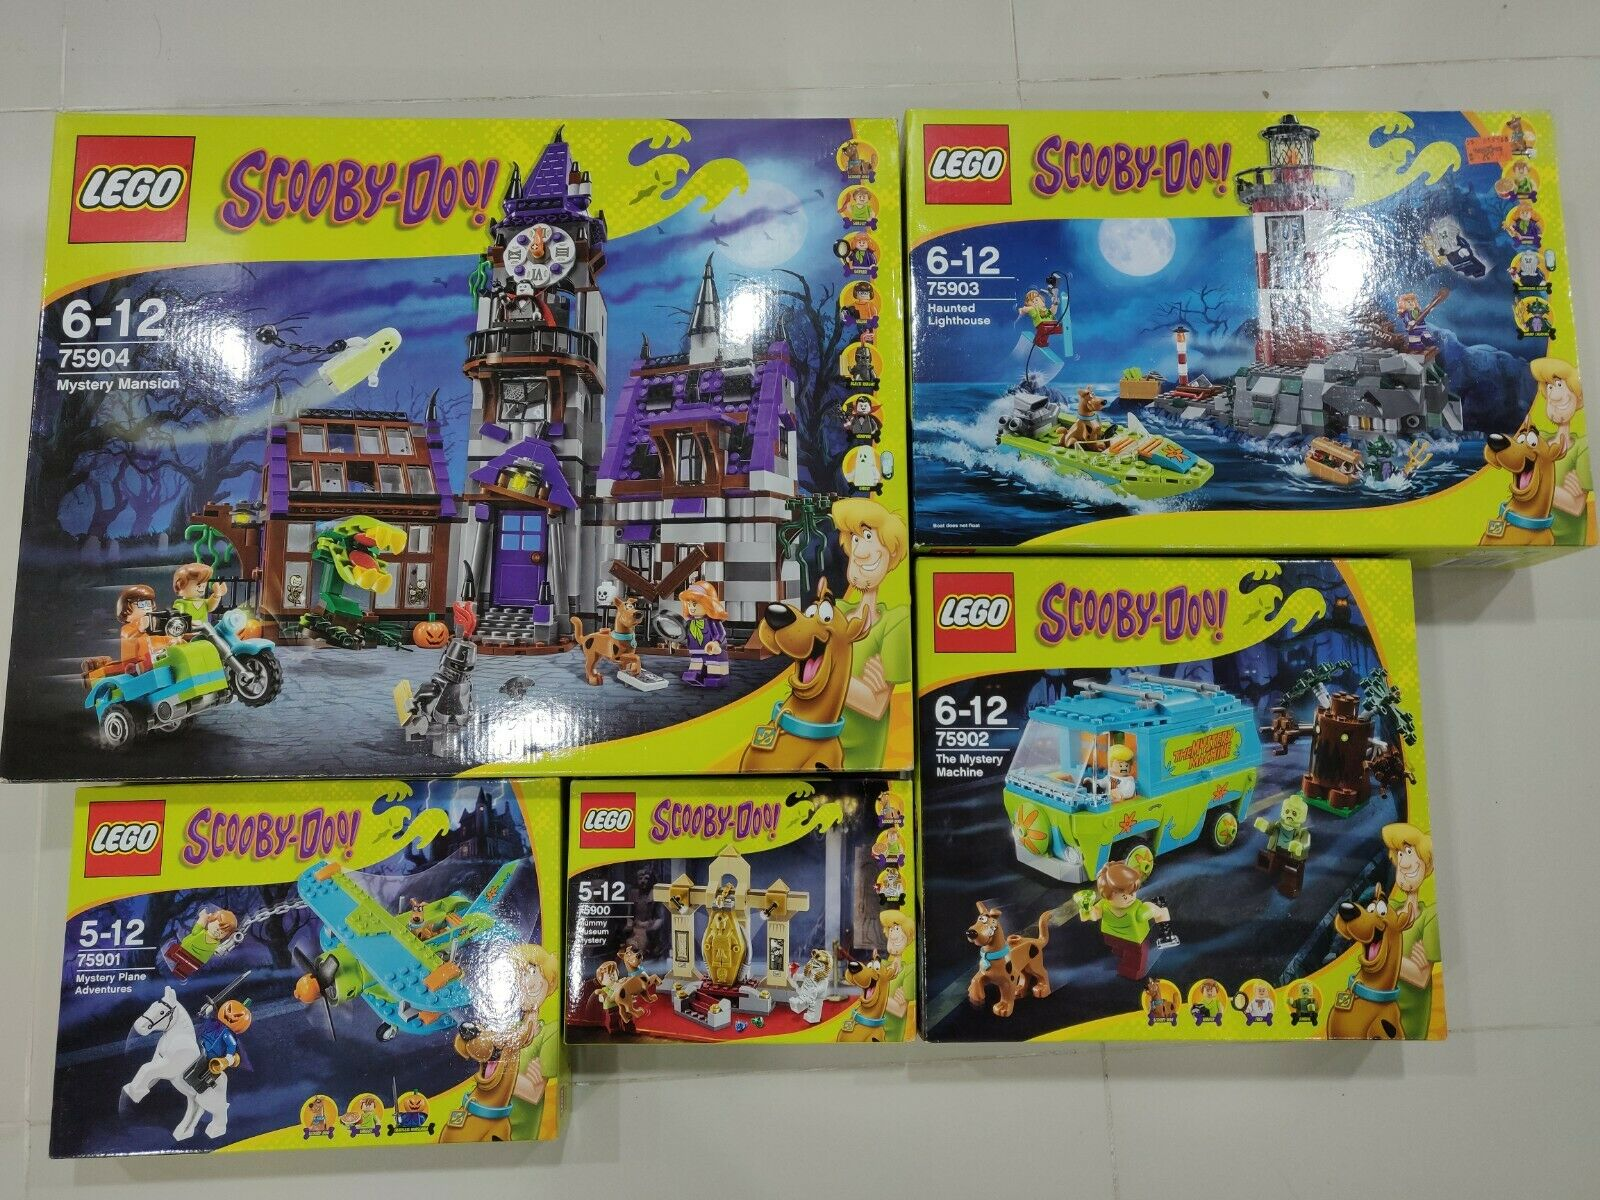 LEGO Scooby Doo 75900 75901 75901 75901 75902 75903 75904 NEW & RETIRED FREE SHIPPING fddcce